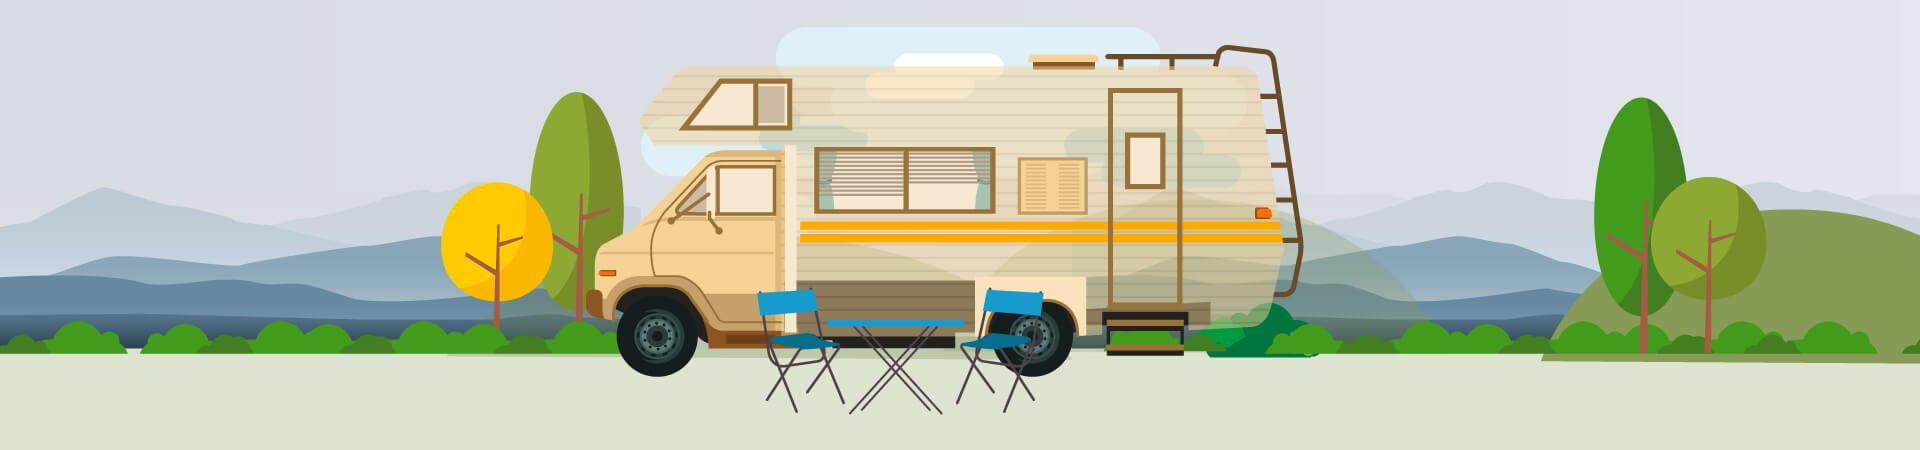 RV Camper Sitting Outside with Locked Doors